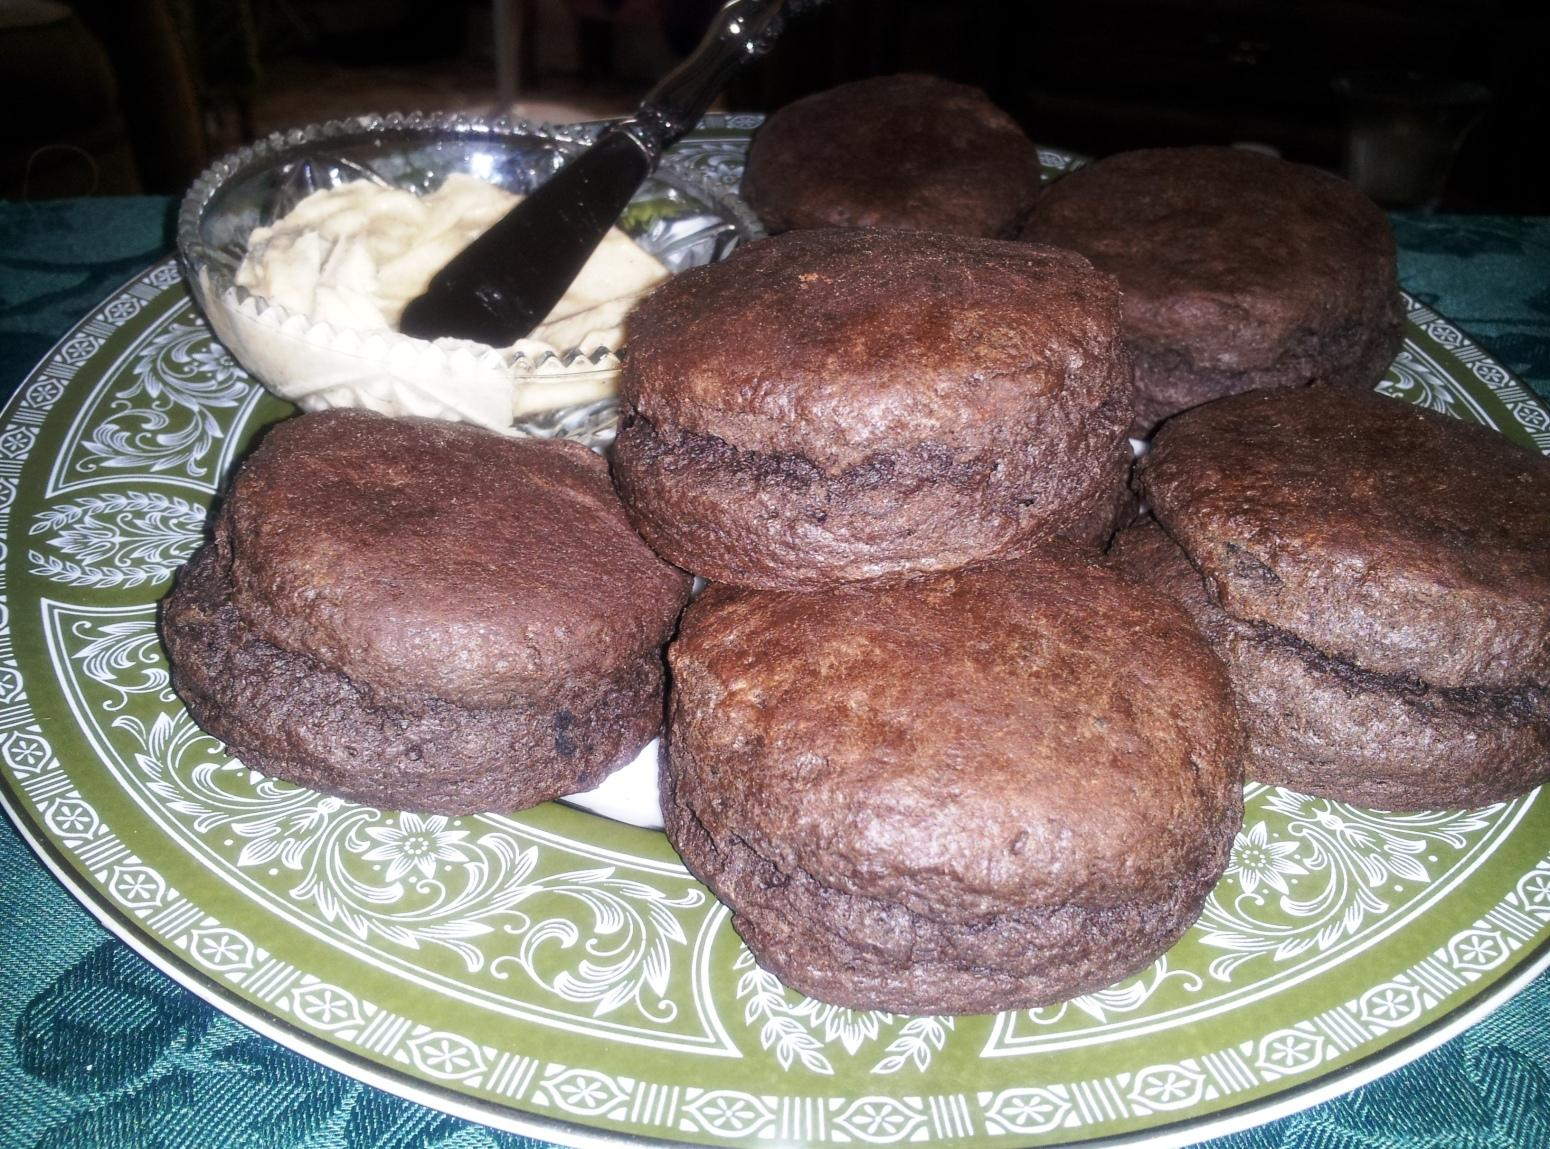 Chocolate Biscuits w/Brown Sugar Cinnamon Butter Recipe